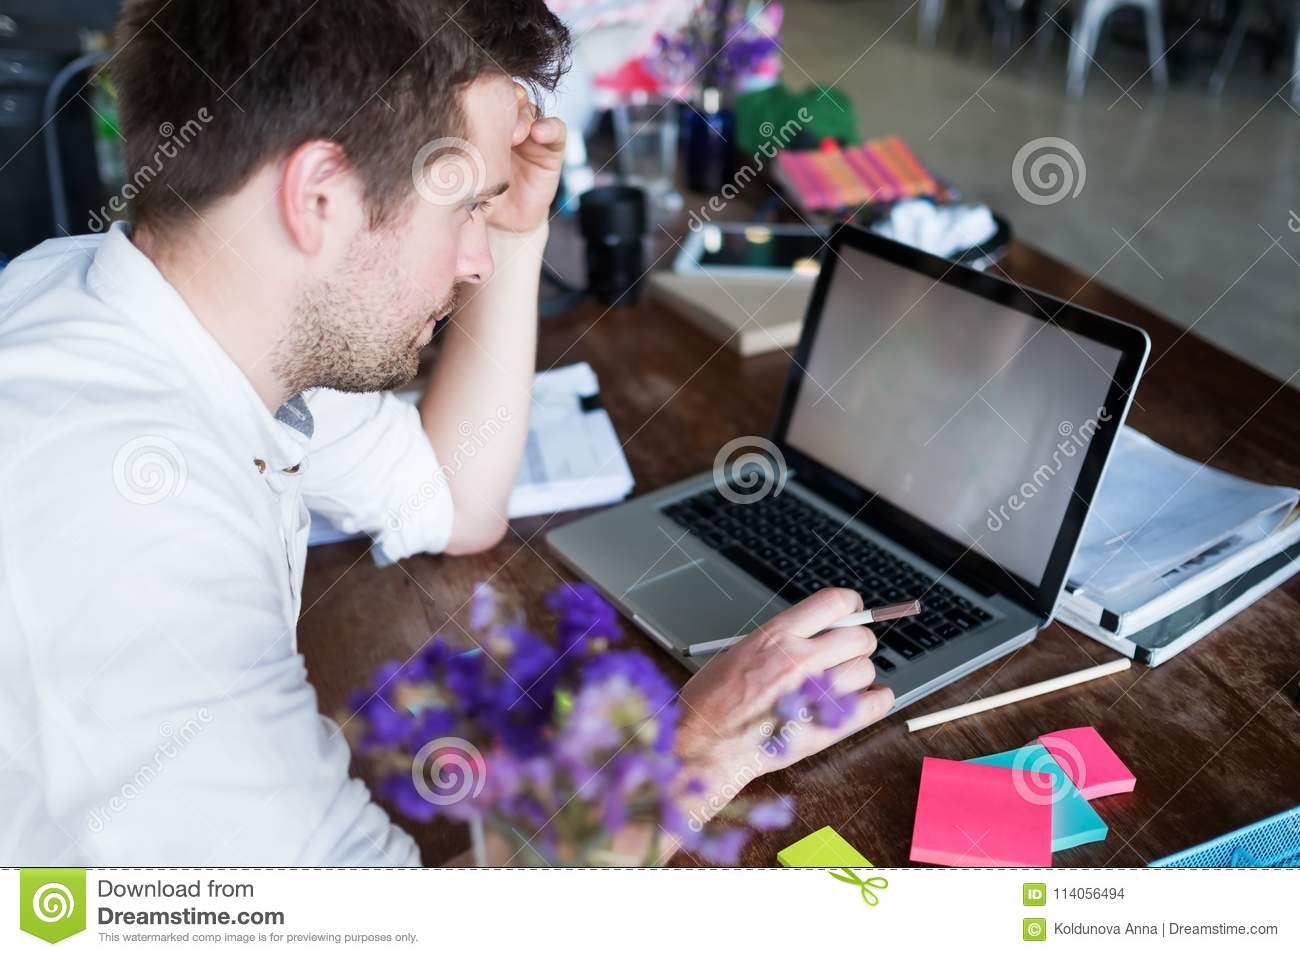 Caucasian man working on laptop while sitting at his modern office place. Concept of young people using coworking place.